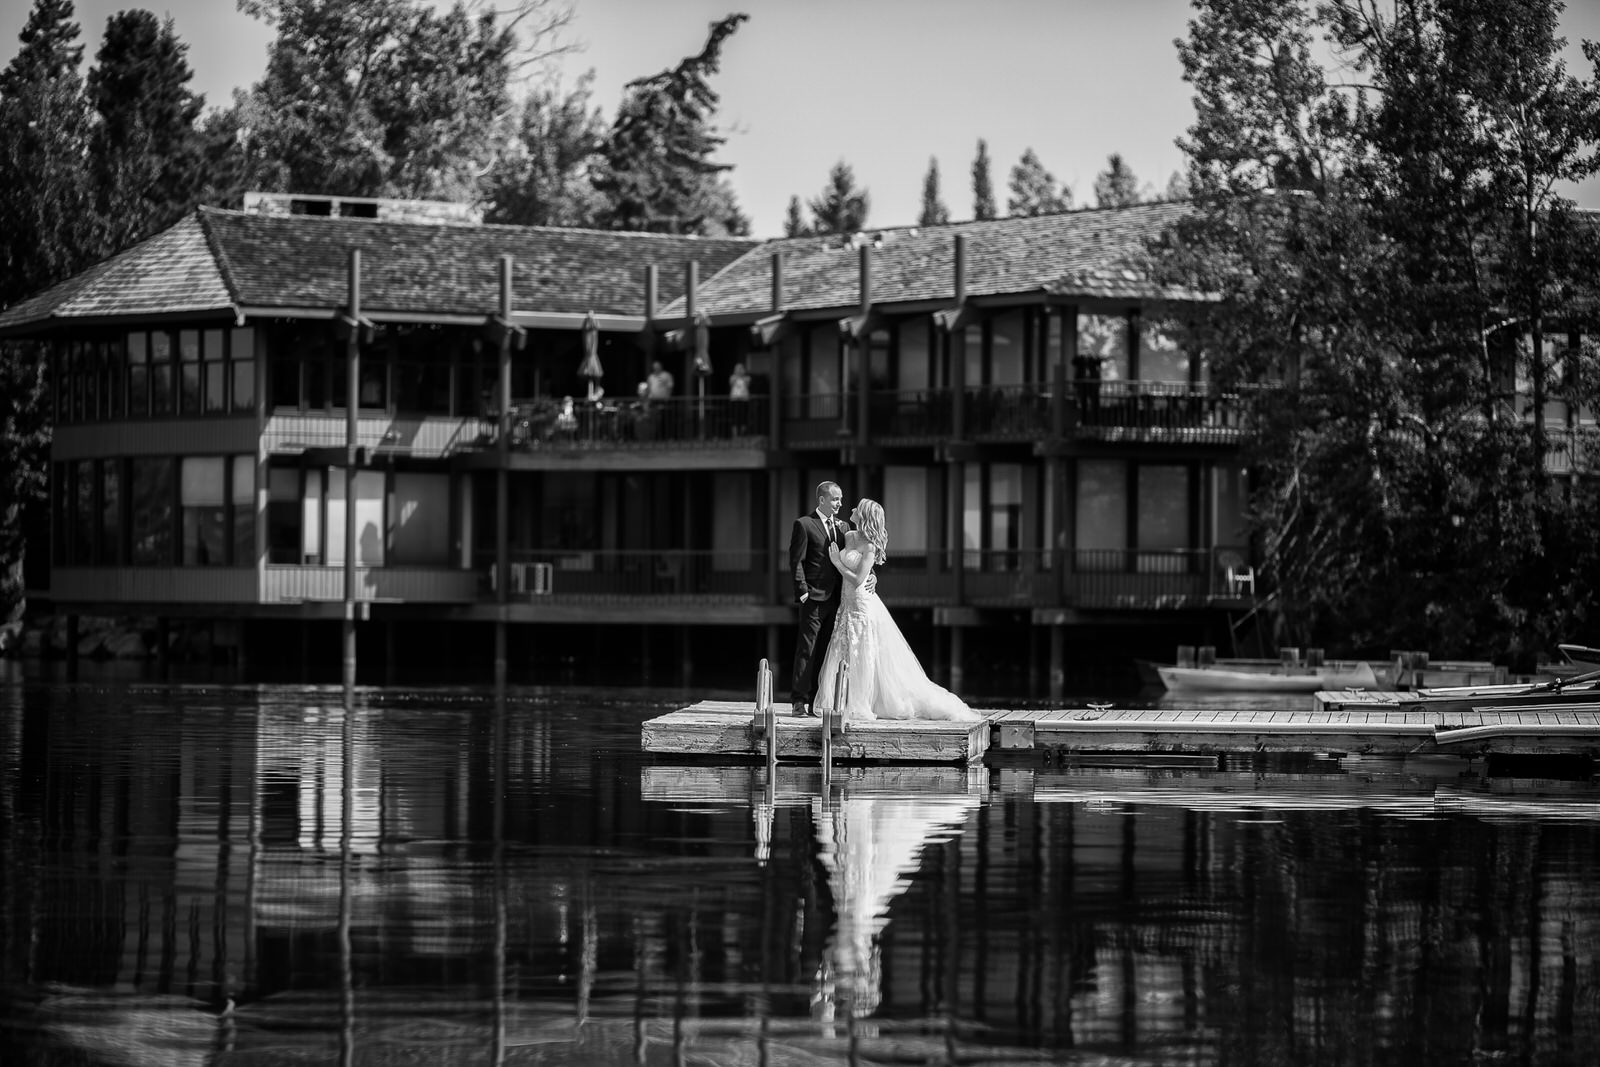 Calgary Wedding Venues - Click here to learn more about wedding venues in Calgary.